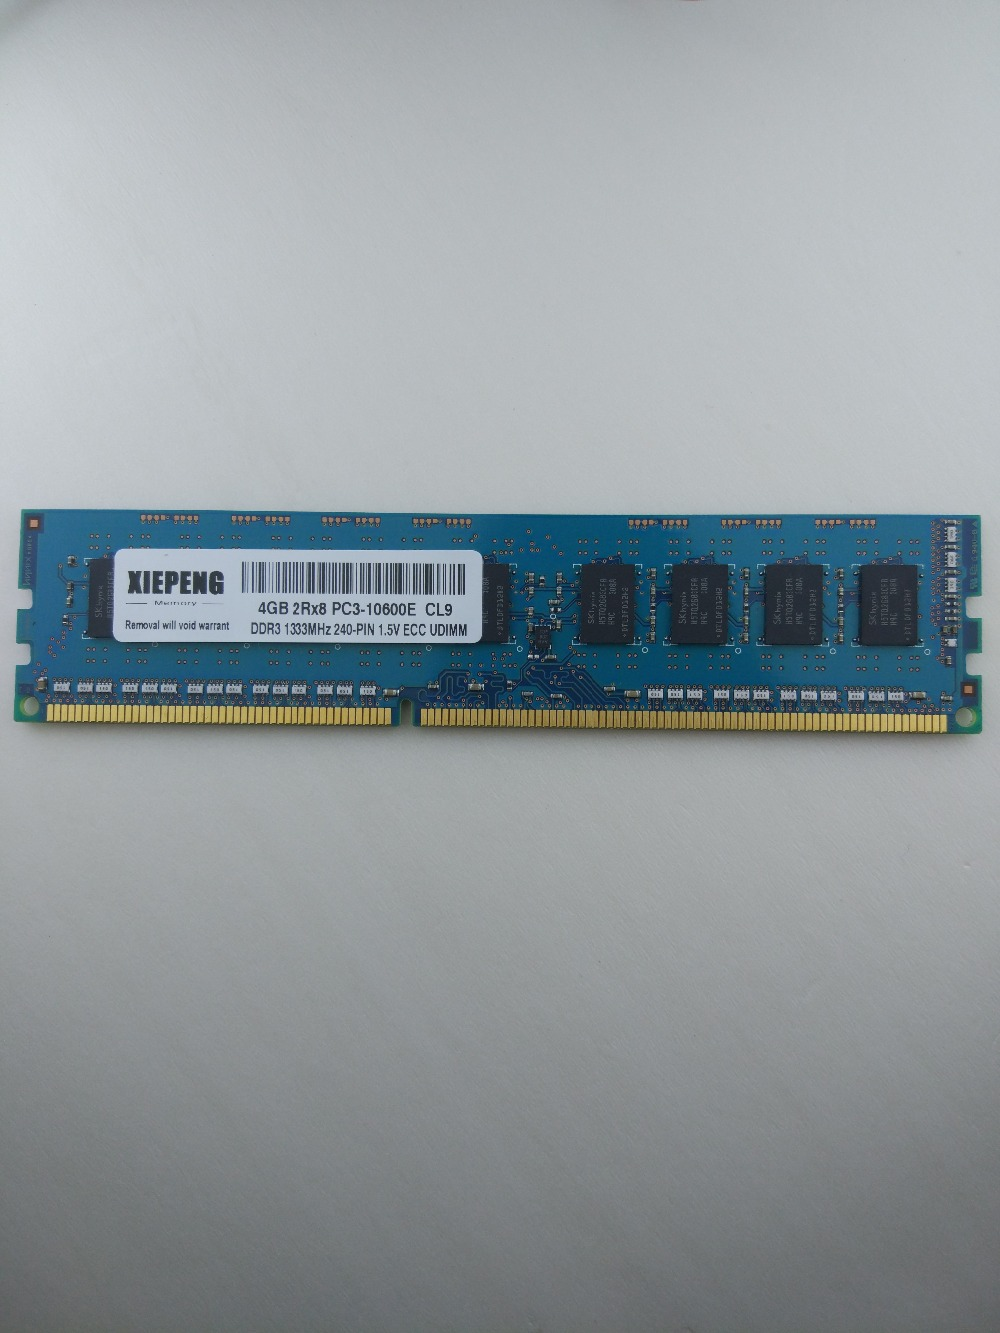 Server 16GB DDR3 1333MHz <font><b>RAM</b></font> 8GB 2Rx8 PC3-10600 <font><b>4GB</b></font> REG ECC for <font><b>HP</b></font> ProLiant BL465c G7 SL170s G6 SL390s G7 SL165s G7 Registered image